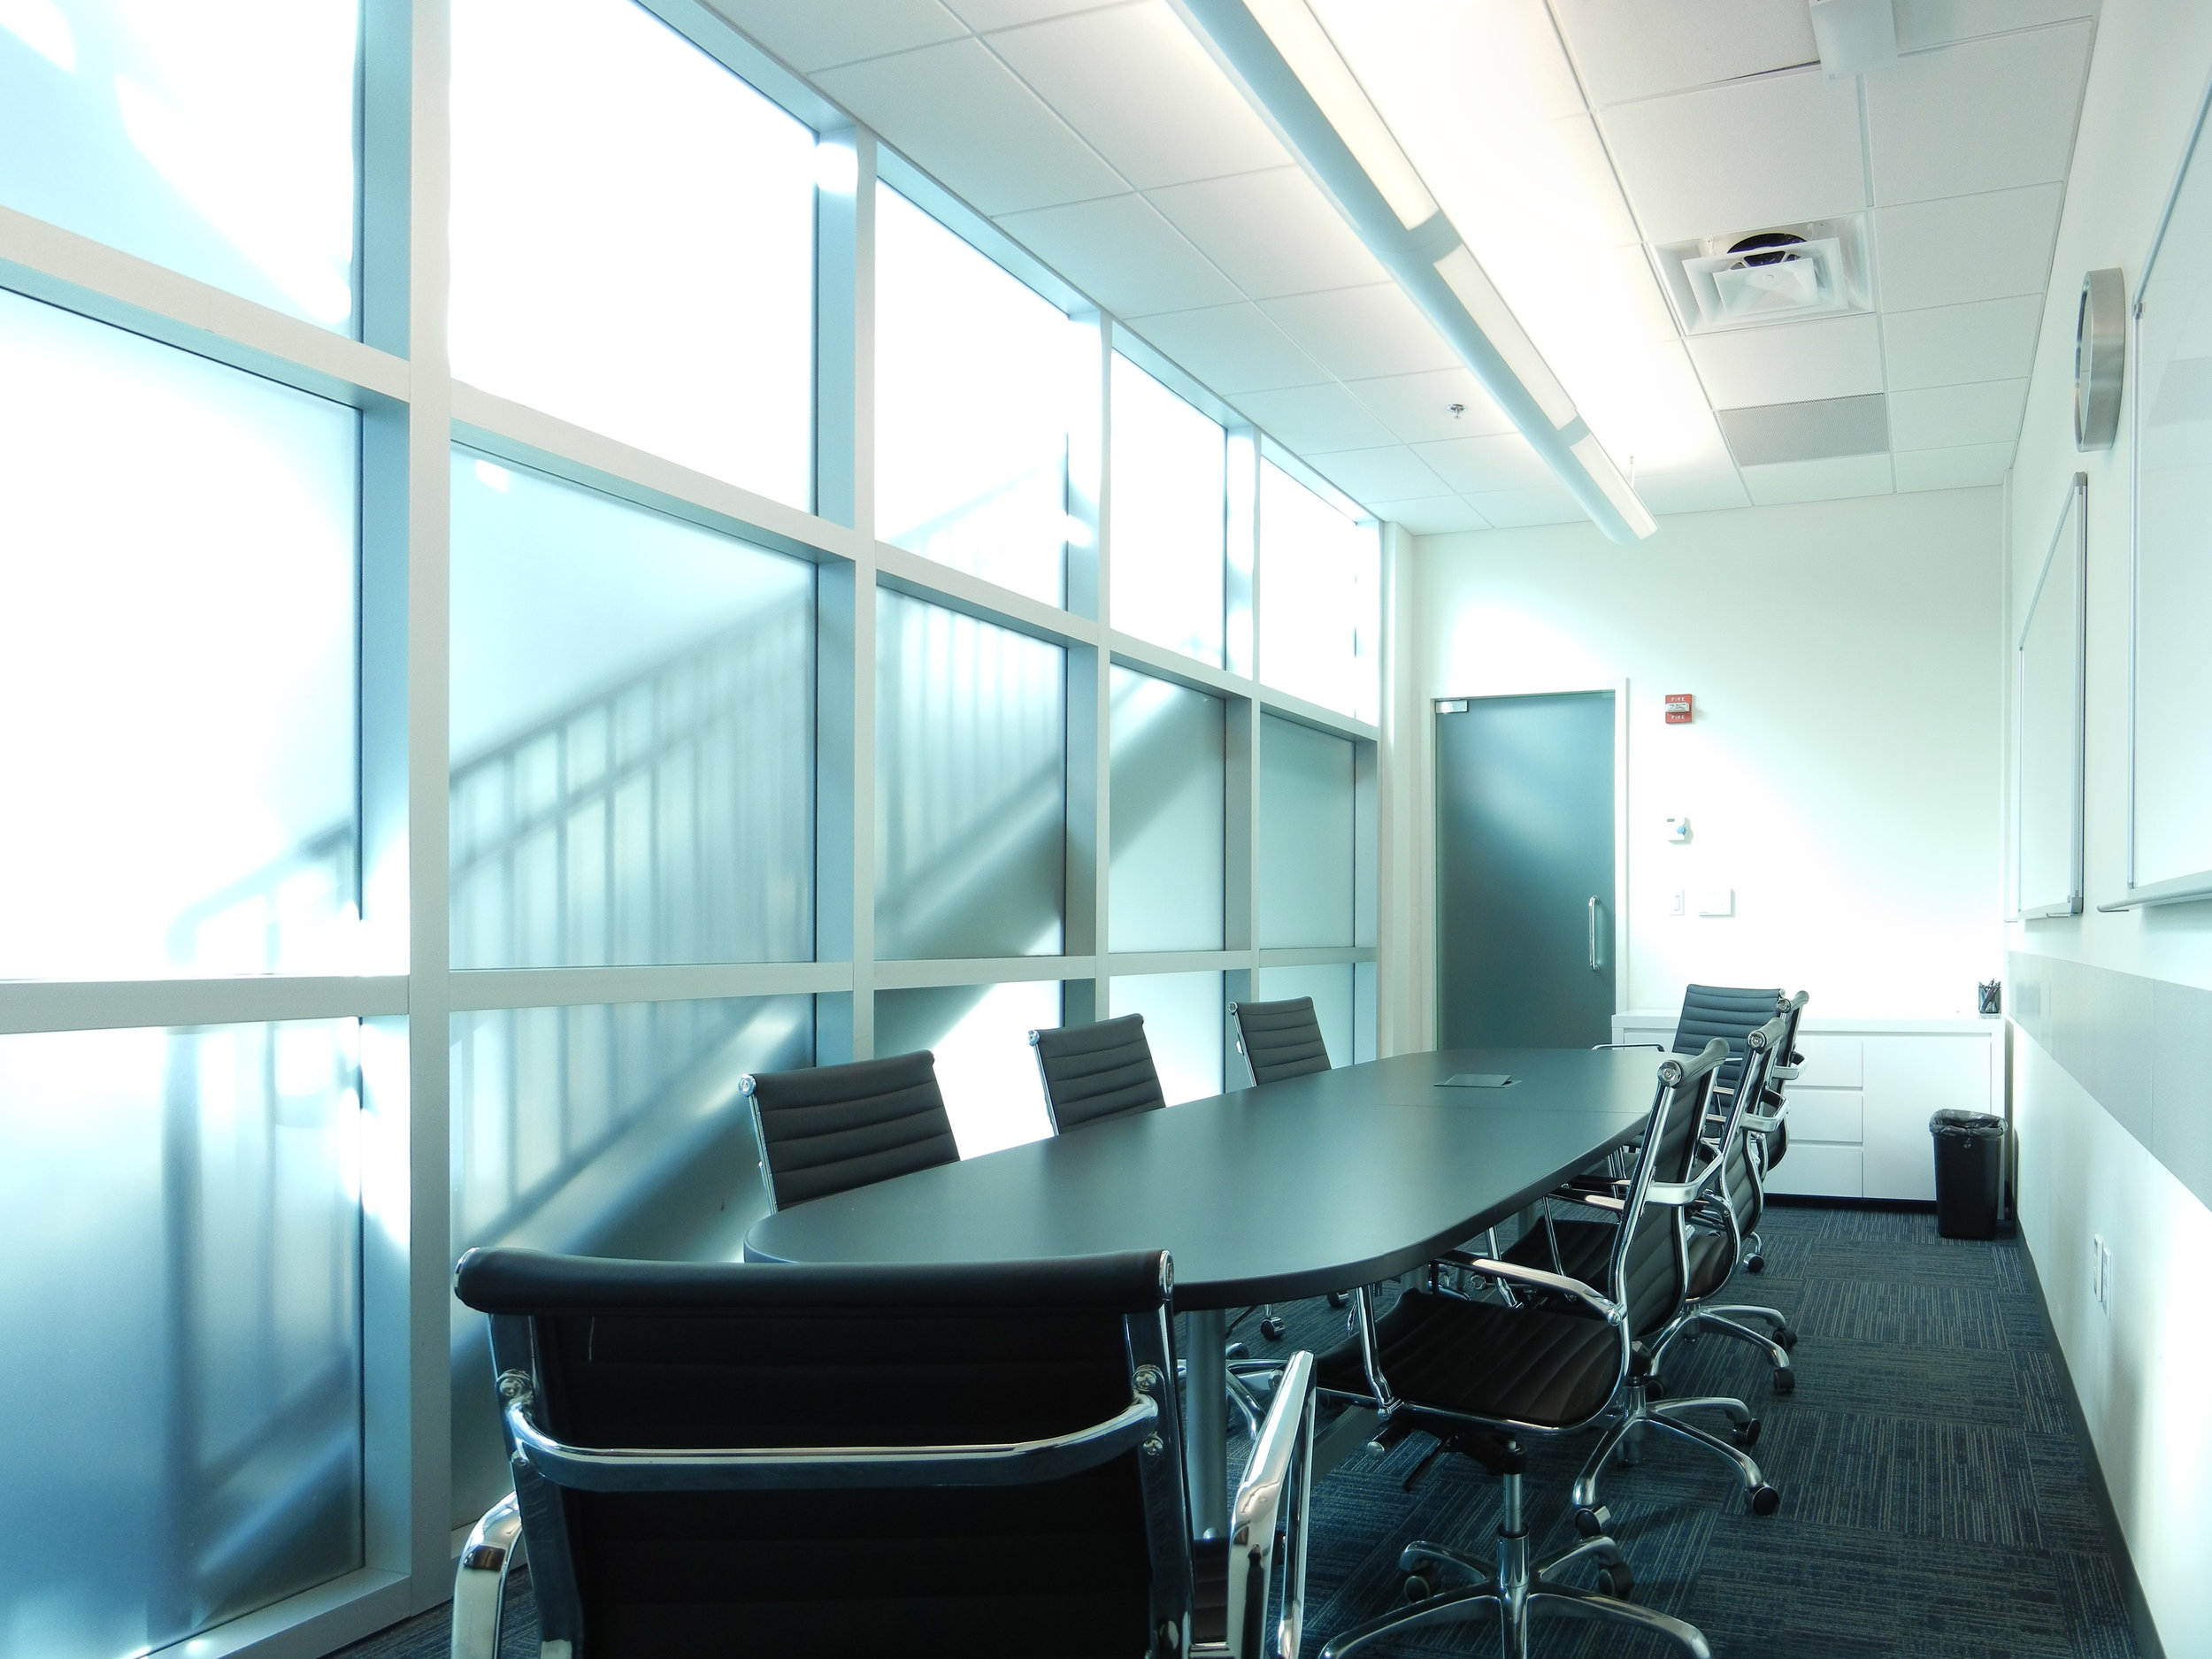 Charles River Analytics Conference Room by HDS Architecture